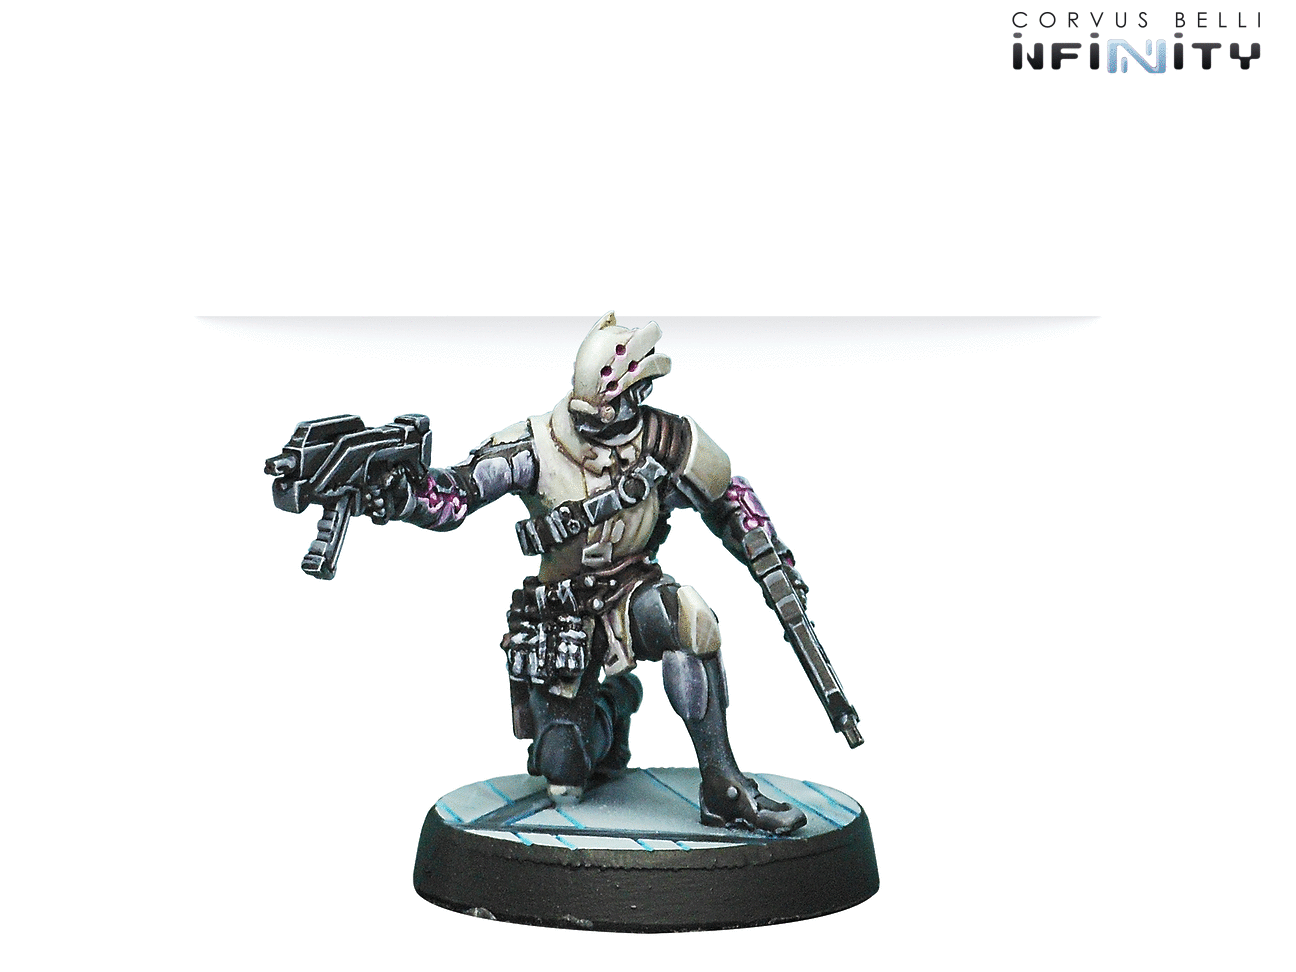 INF - Aleph - Posthumans, 2G Proxies